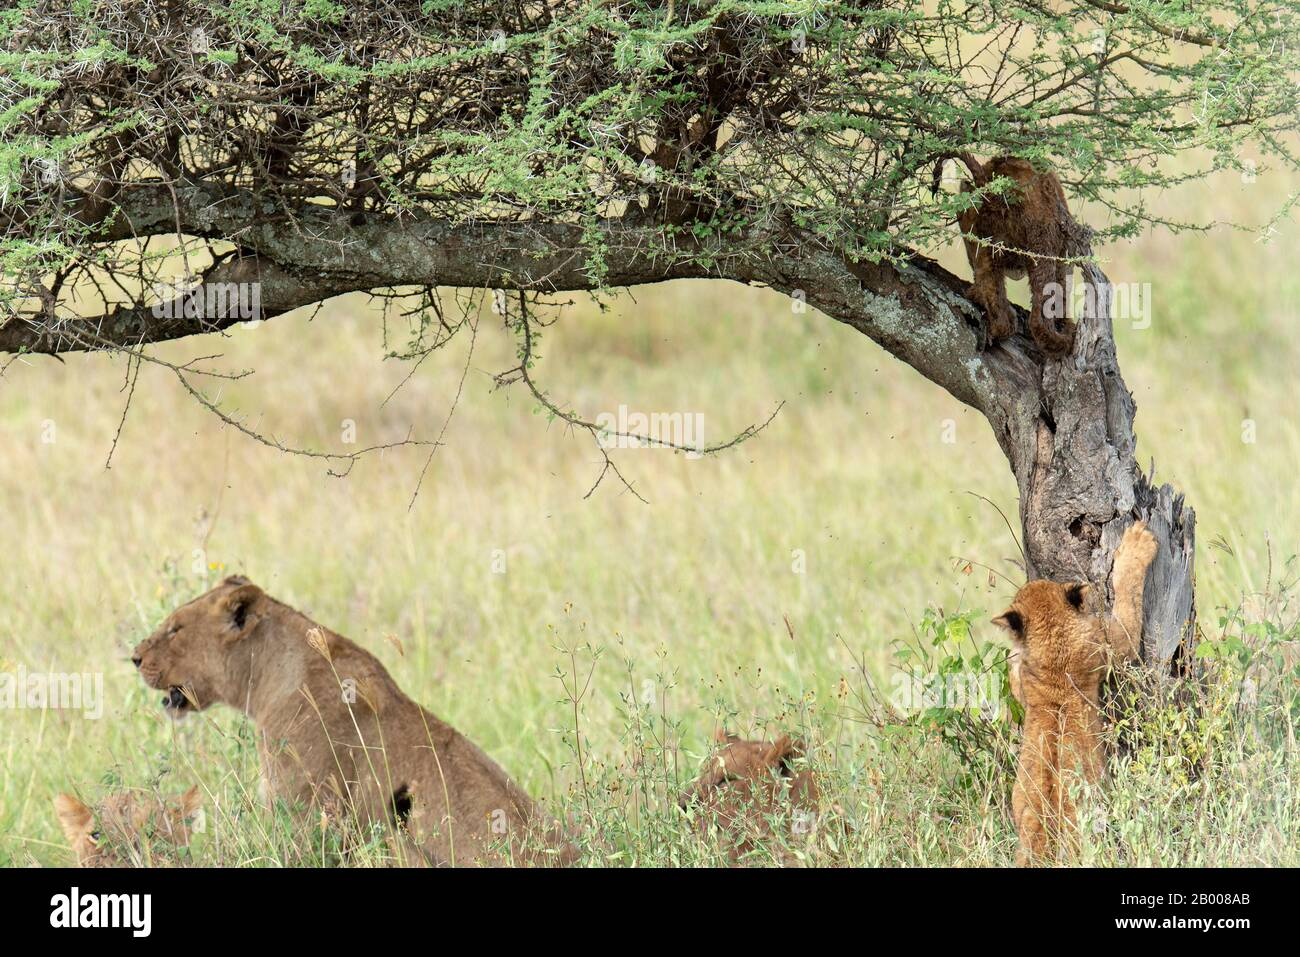 Lions of the Serengeti with cub sharpening his claws on the tree. Stock Photo